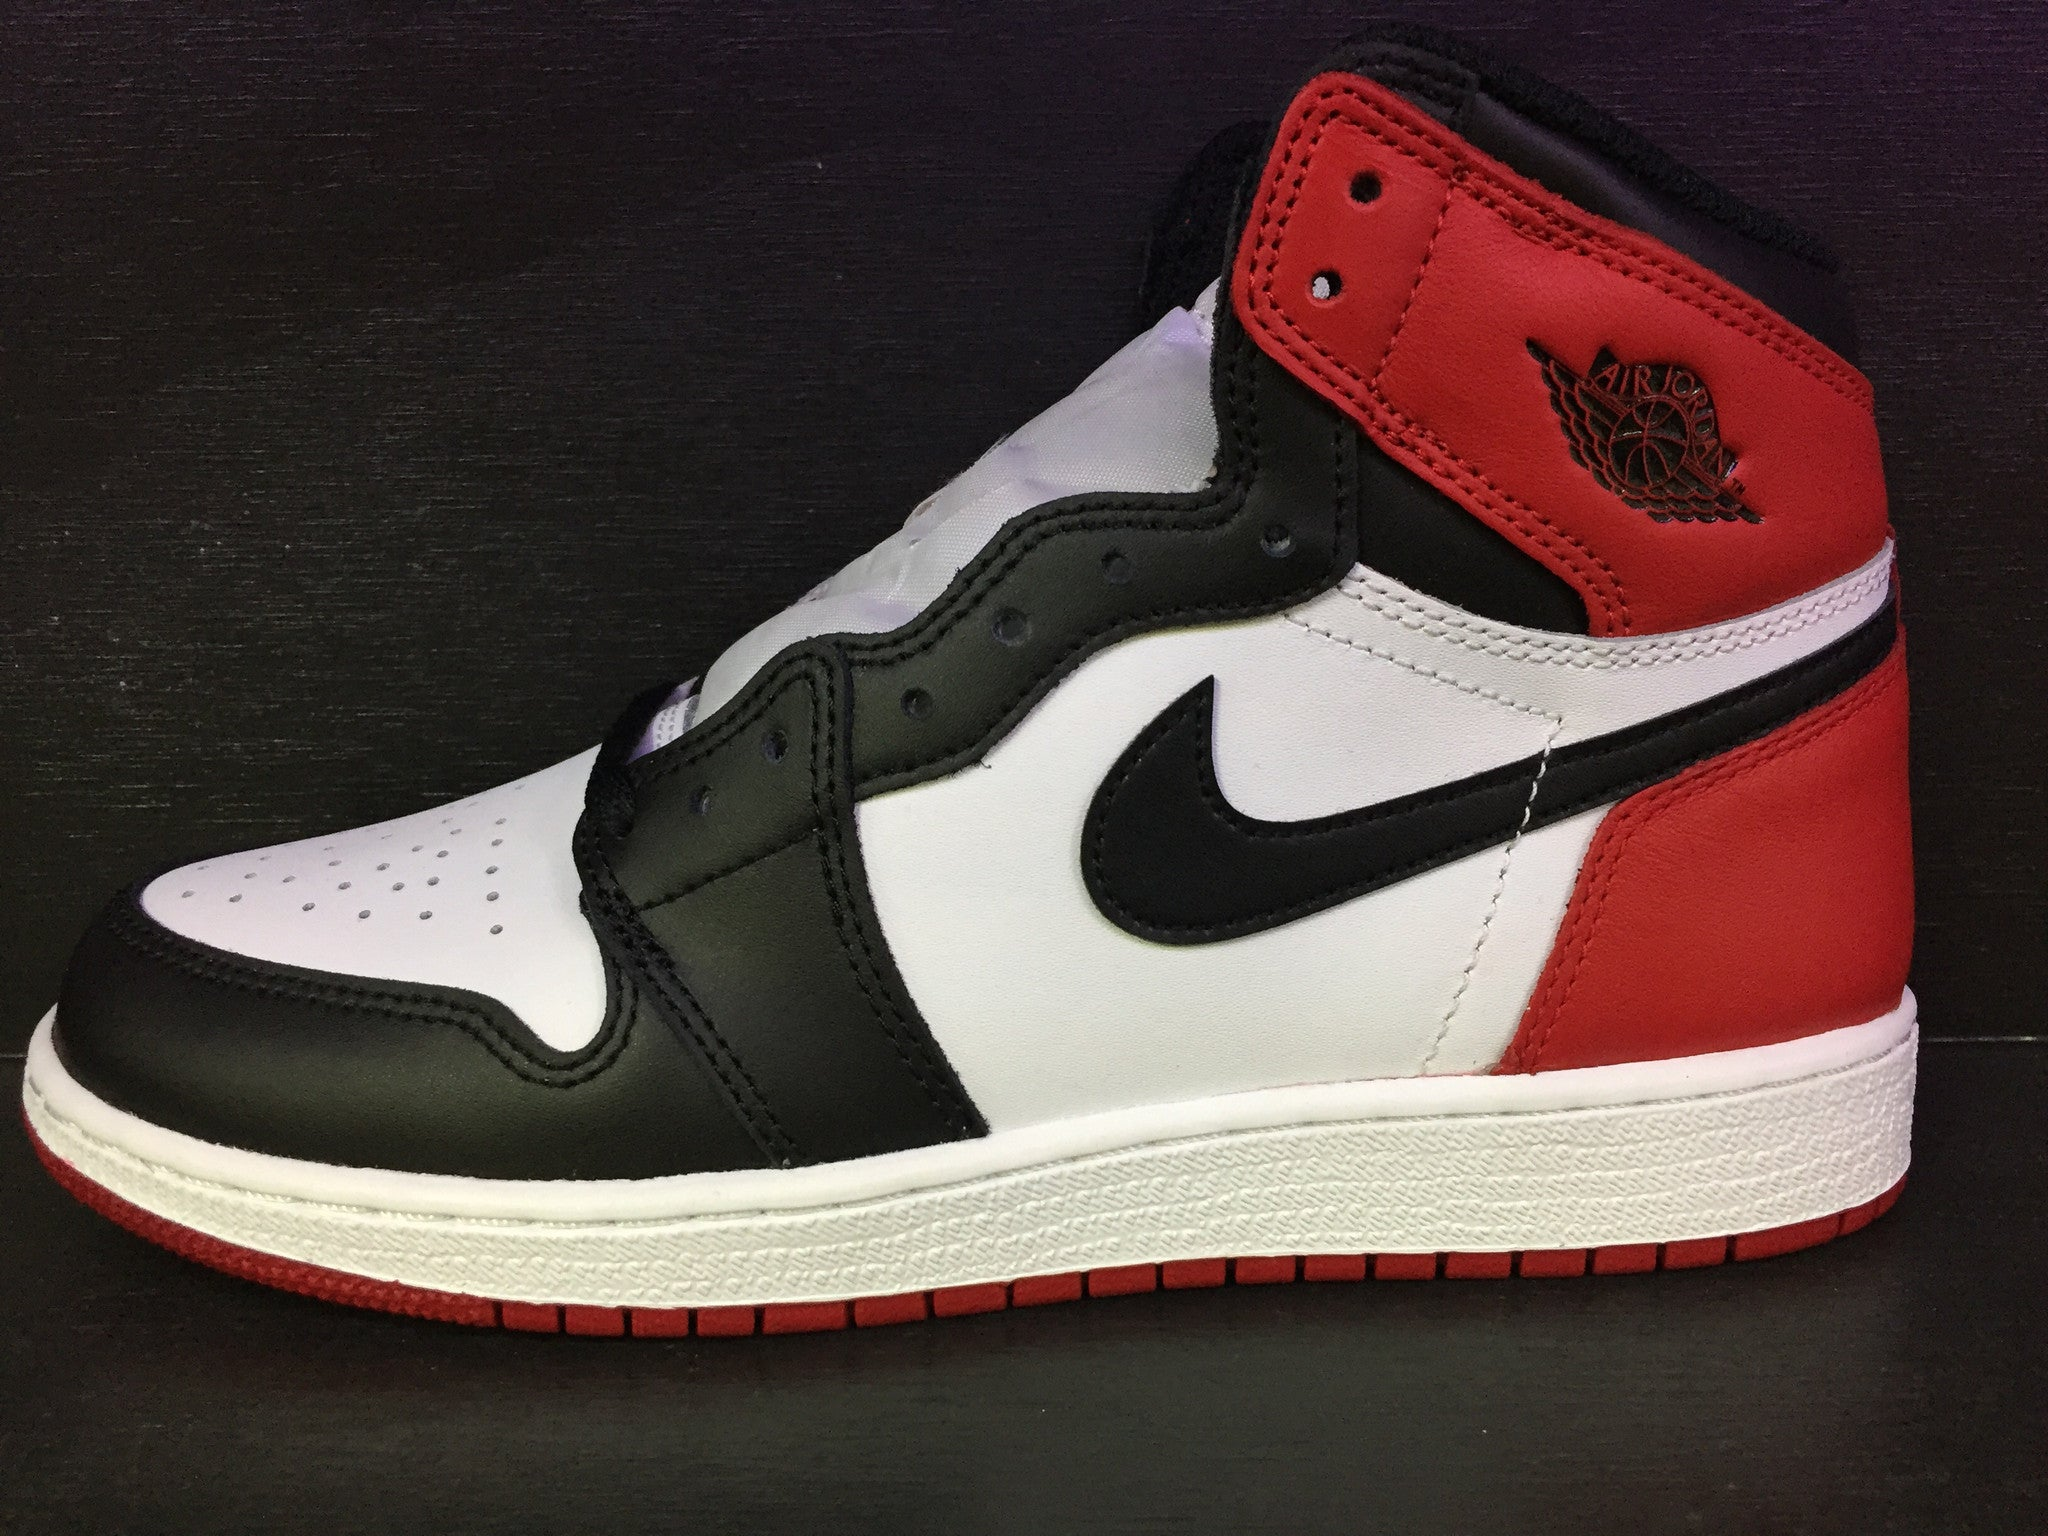 Air Jordan 1 Retro High OG 'Black Toe' GS 2016